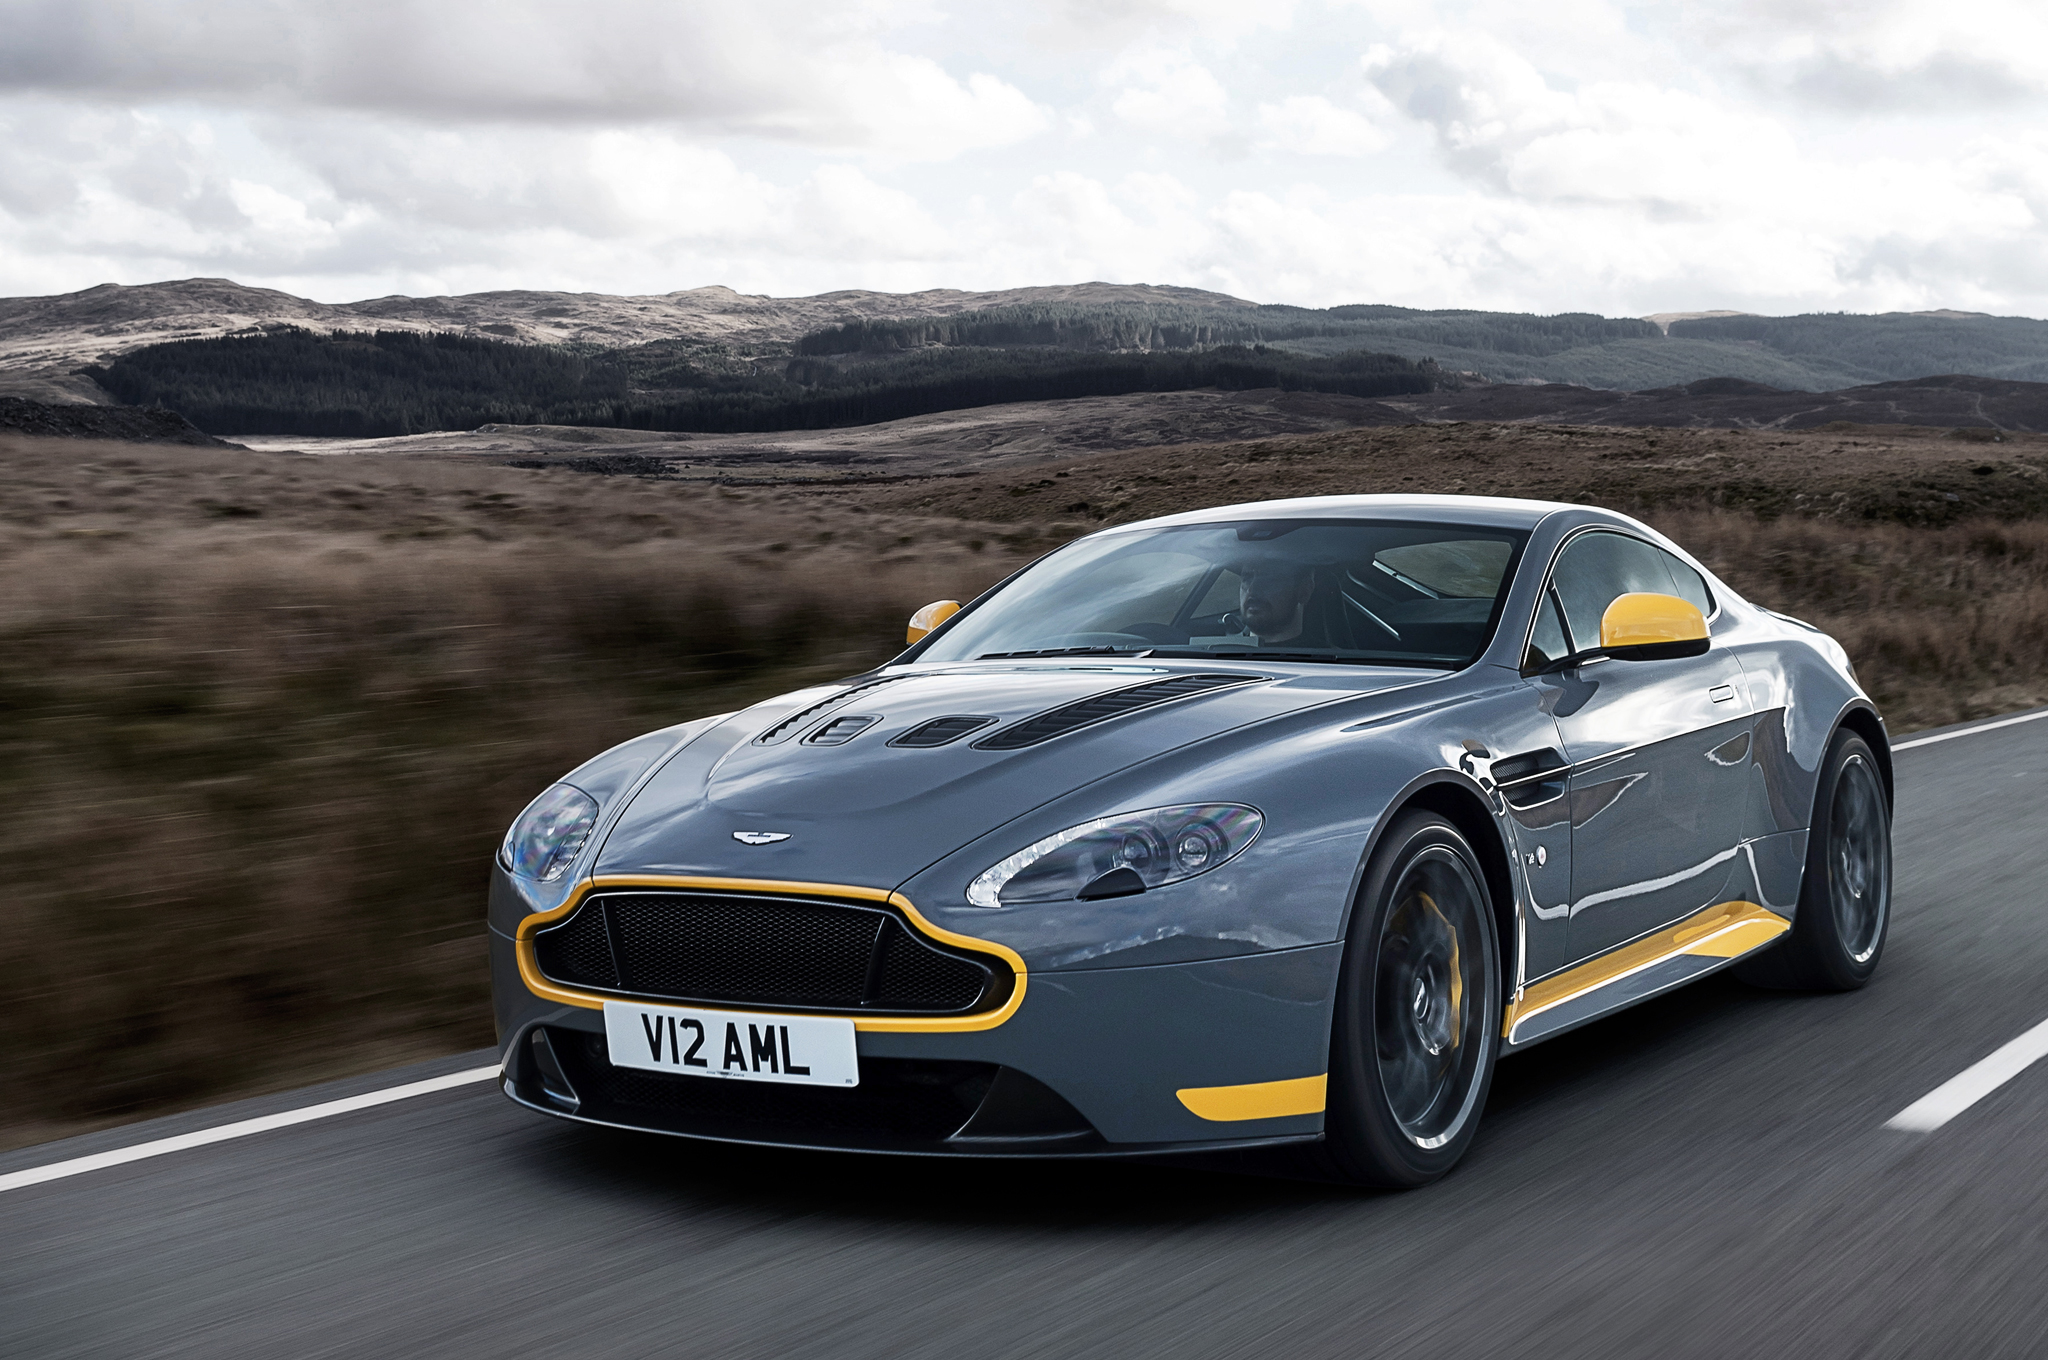 2019 Aston Martin V12 Vantage Car Photos Catalog 2018